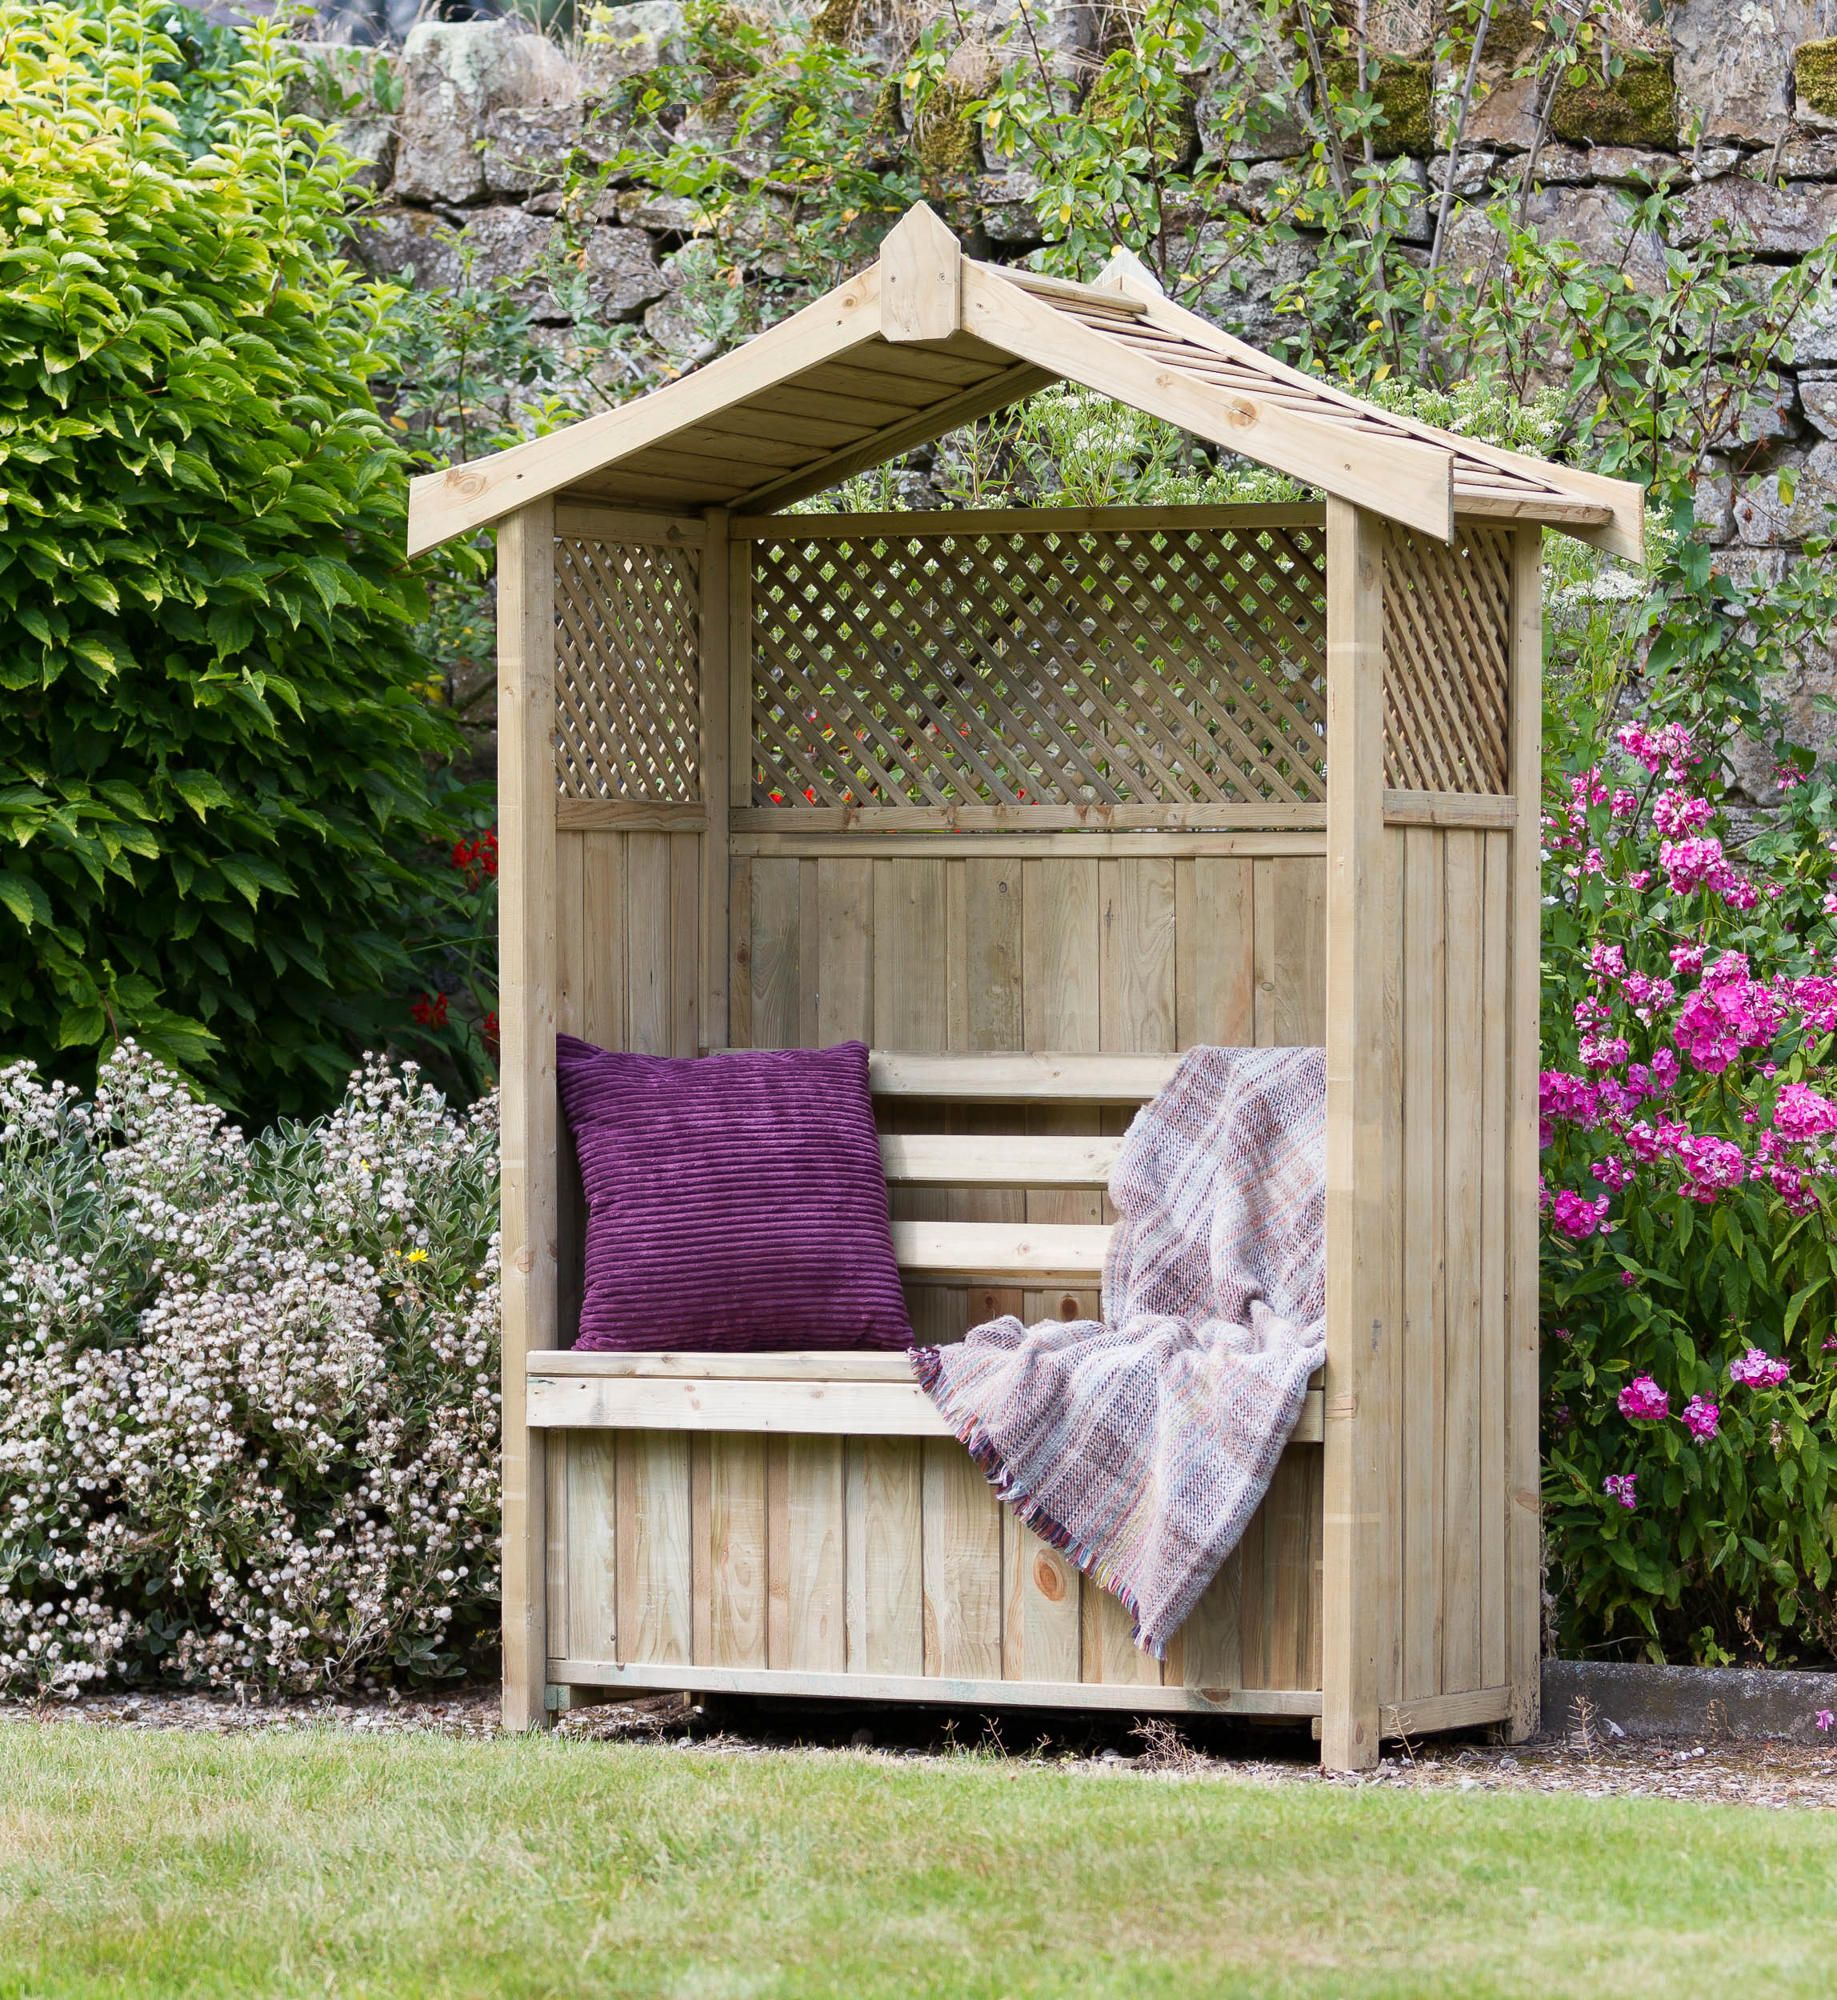 Prime Zest 4 Leisure Dorset Arbour With Storage Box Arbor Pdpeps Interior Chair Design Pdpepsorg